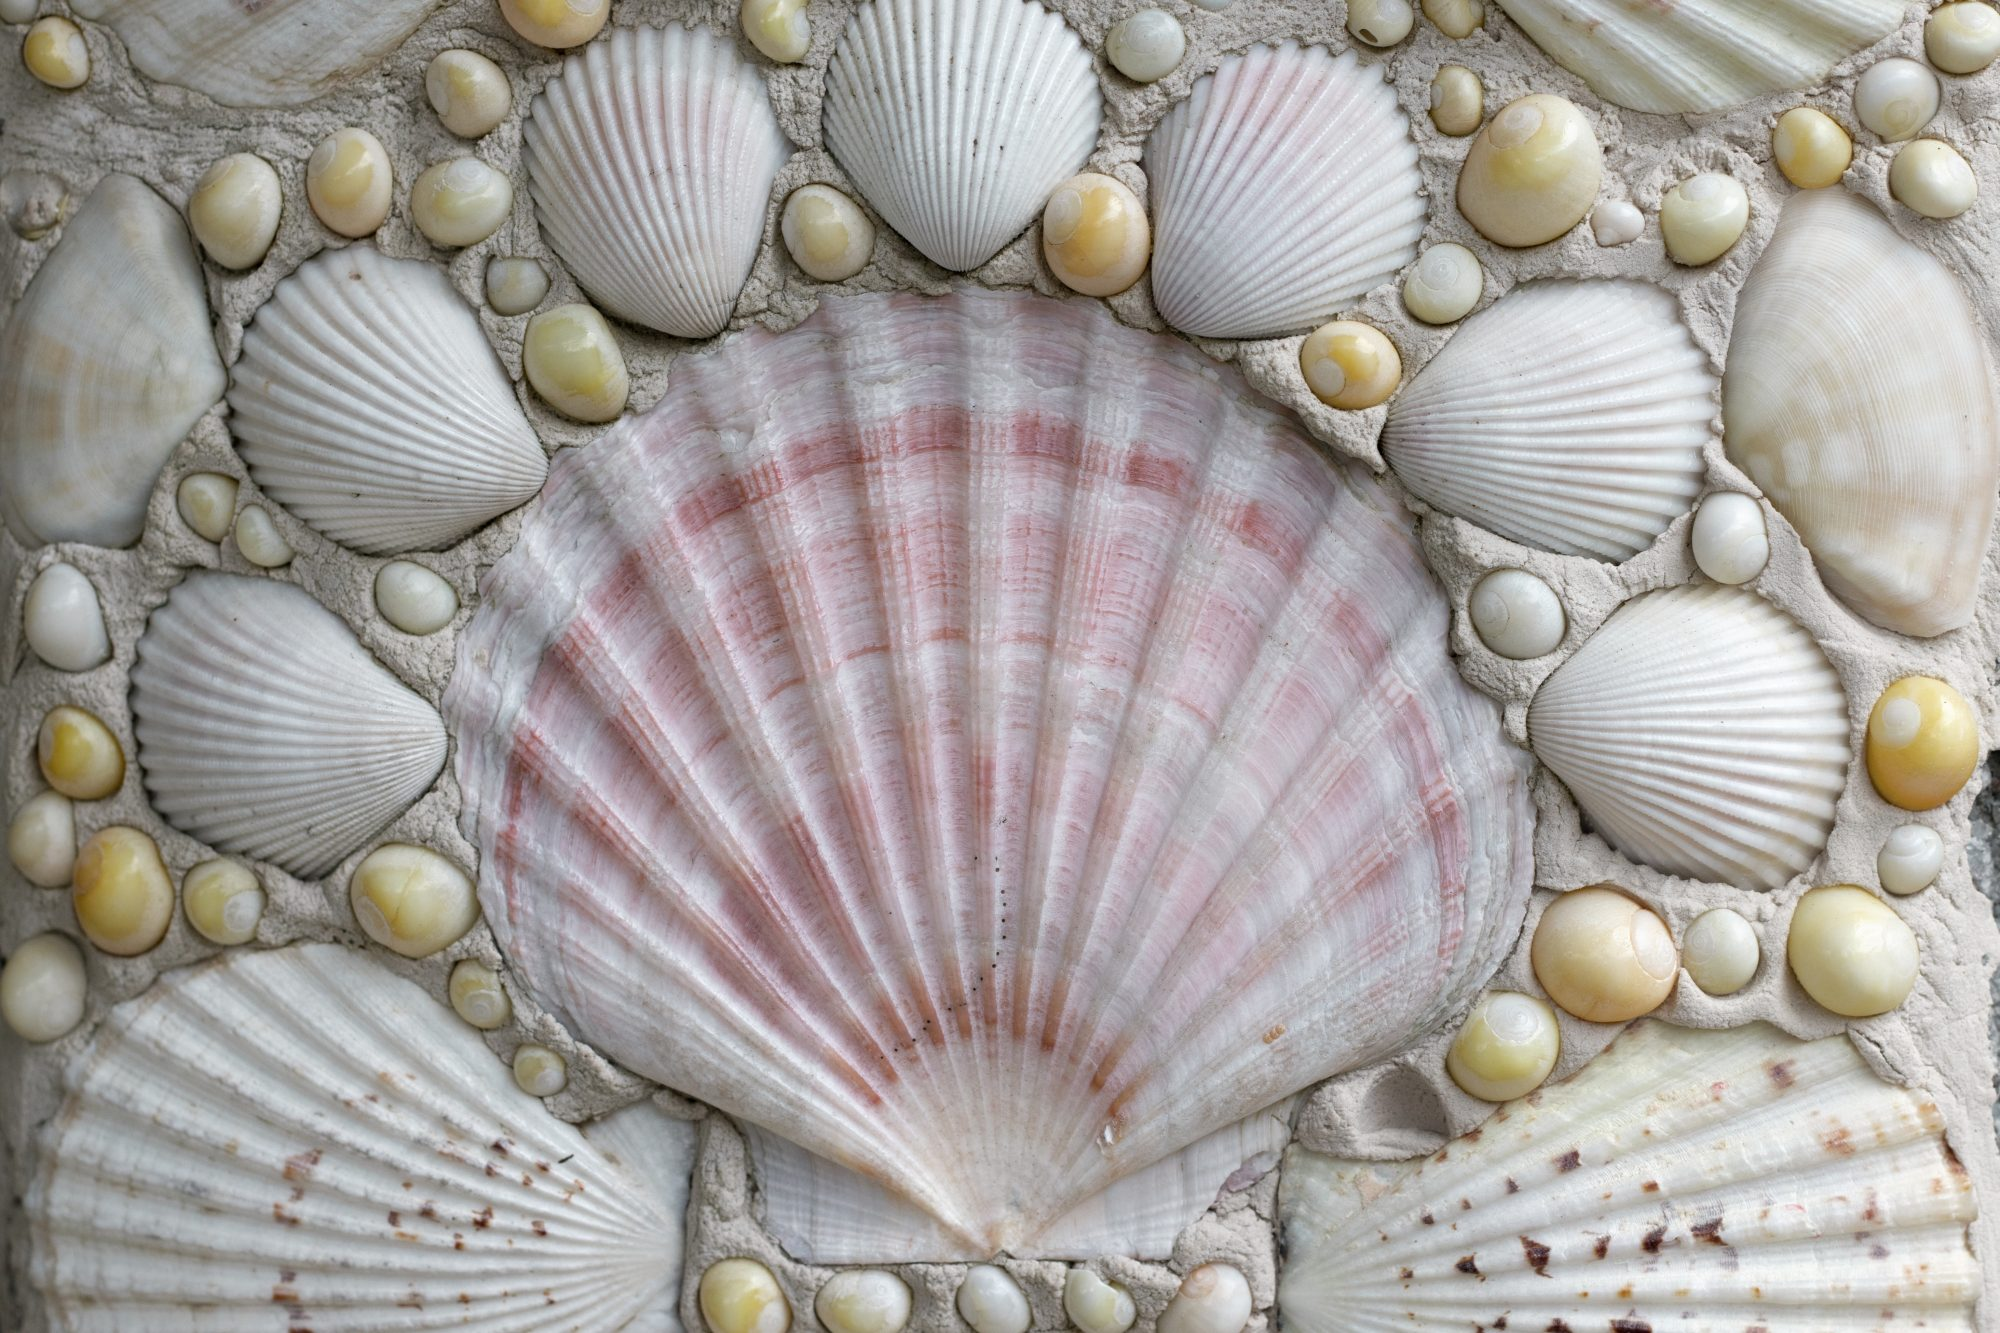 Mosaic made from shells